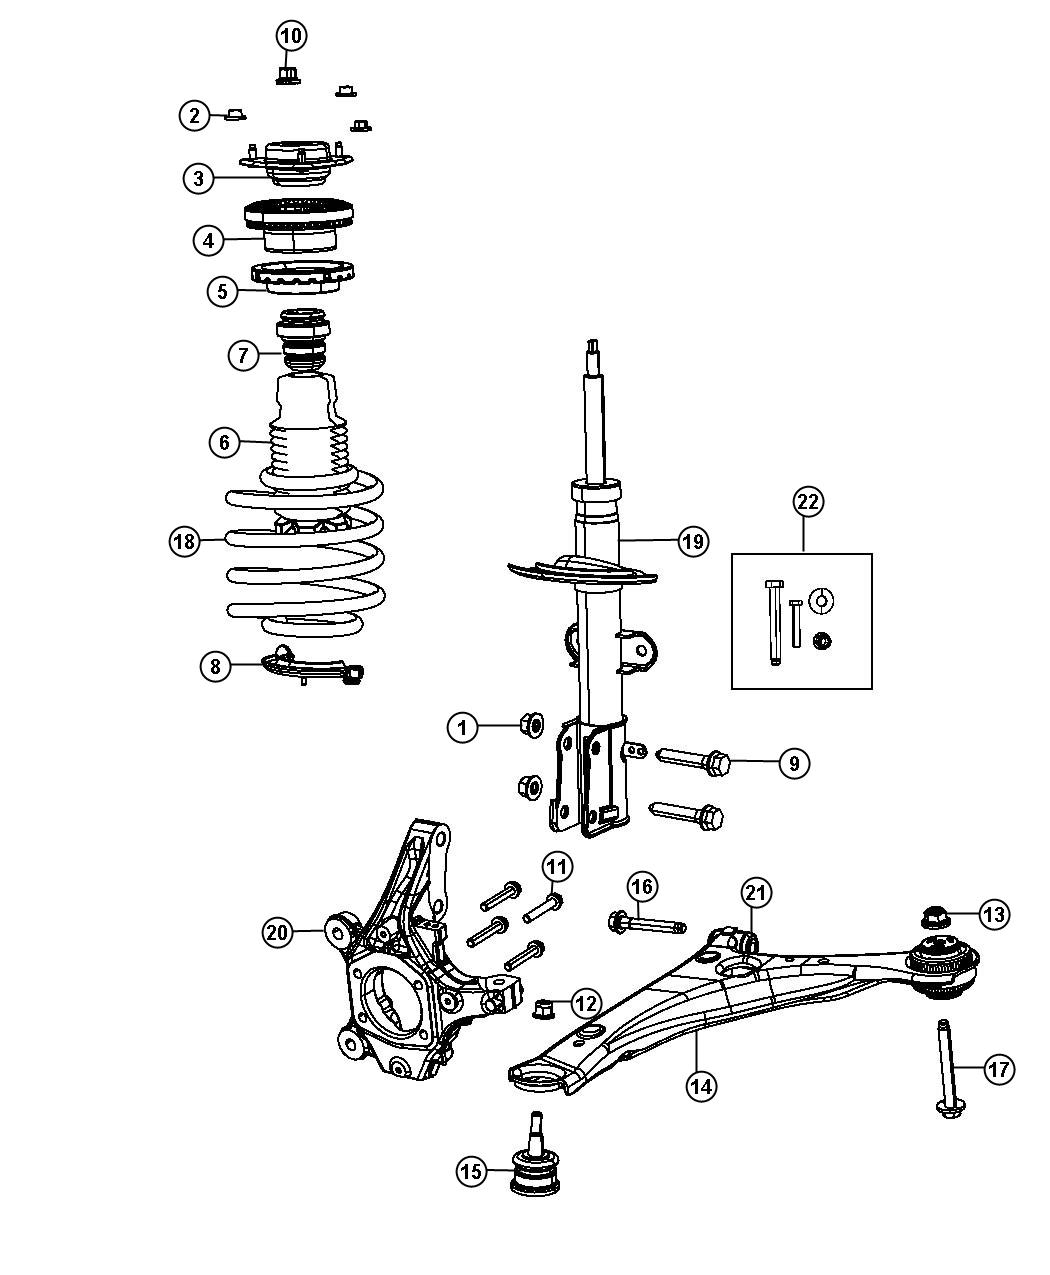 95 Saturn Cooling System Diagram. Saturn. Auto Wiring Diagram